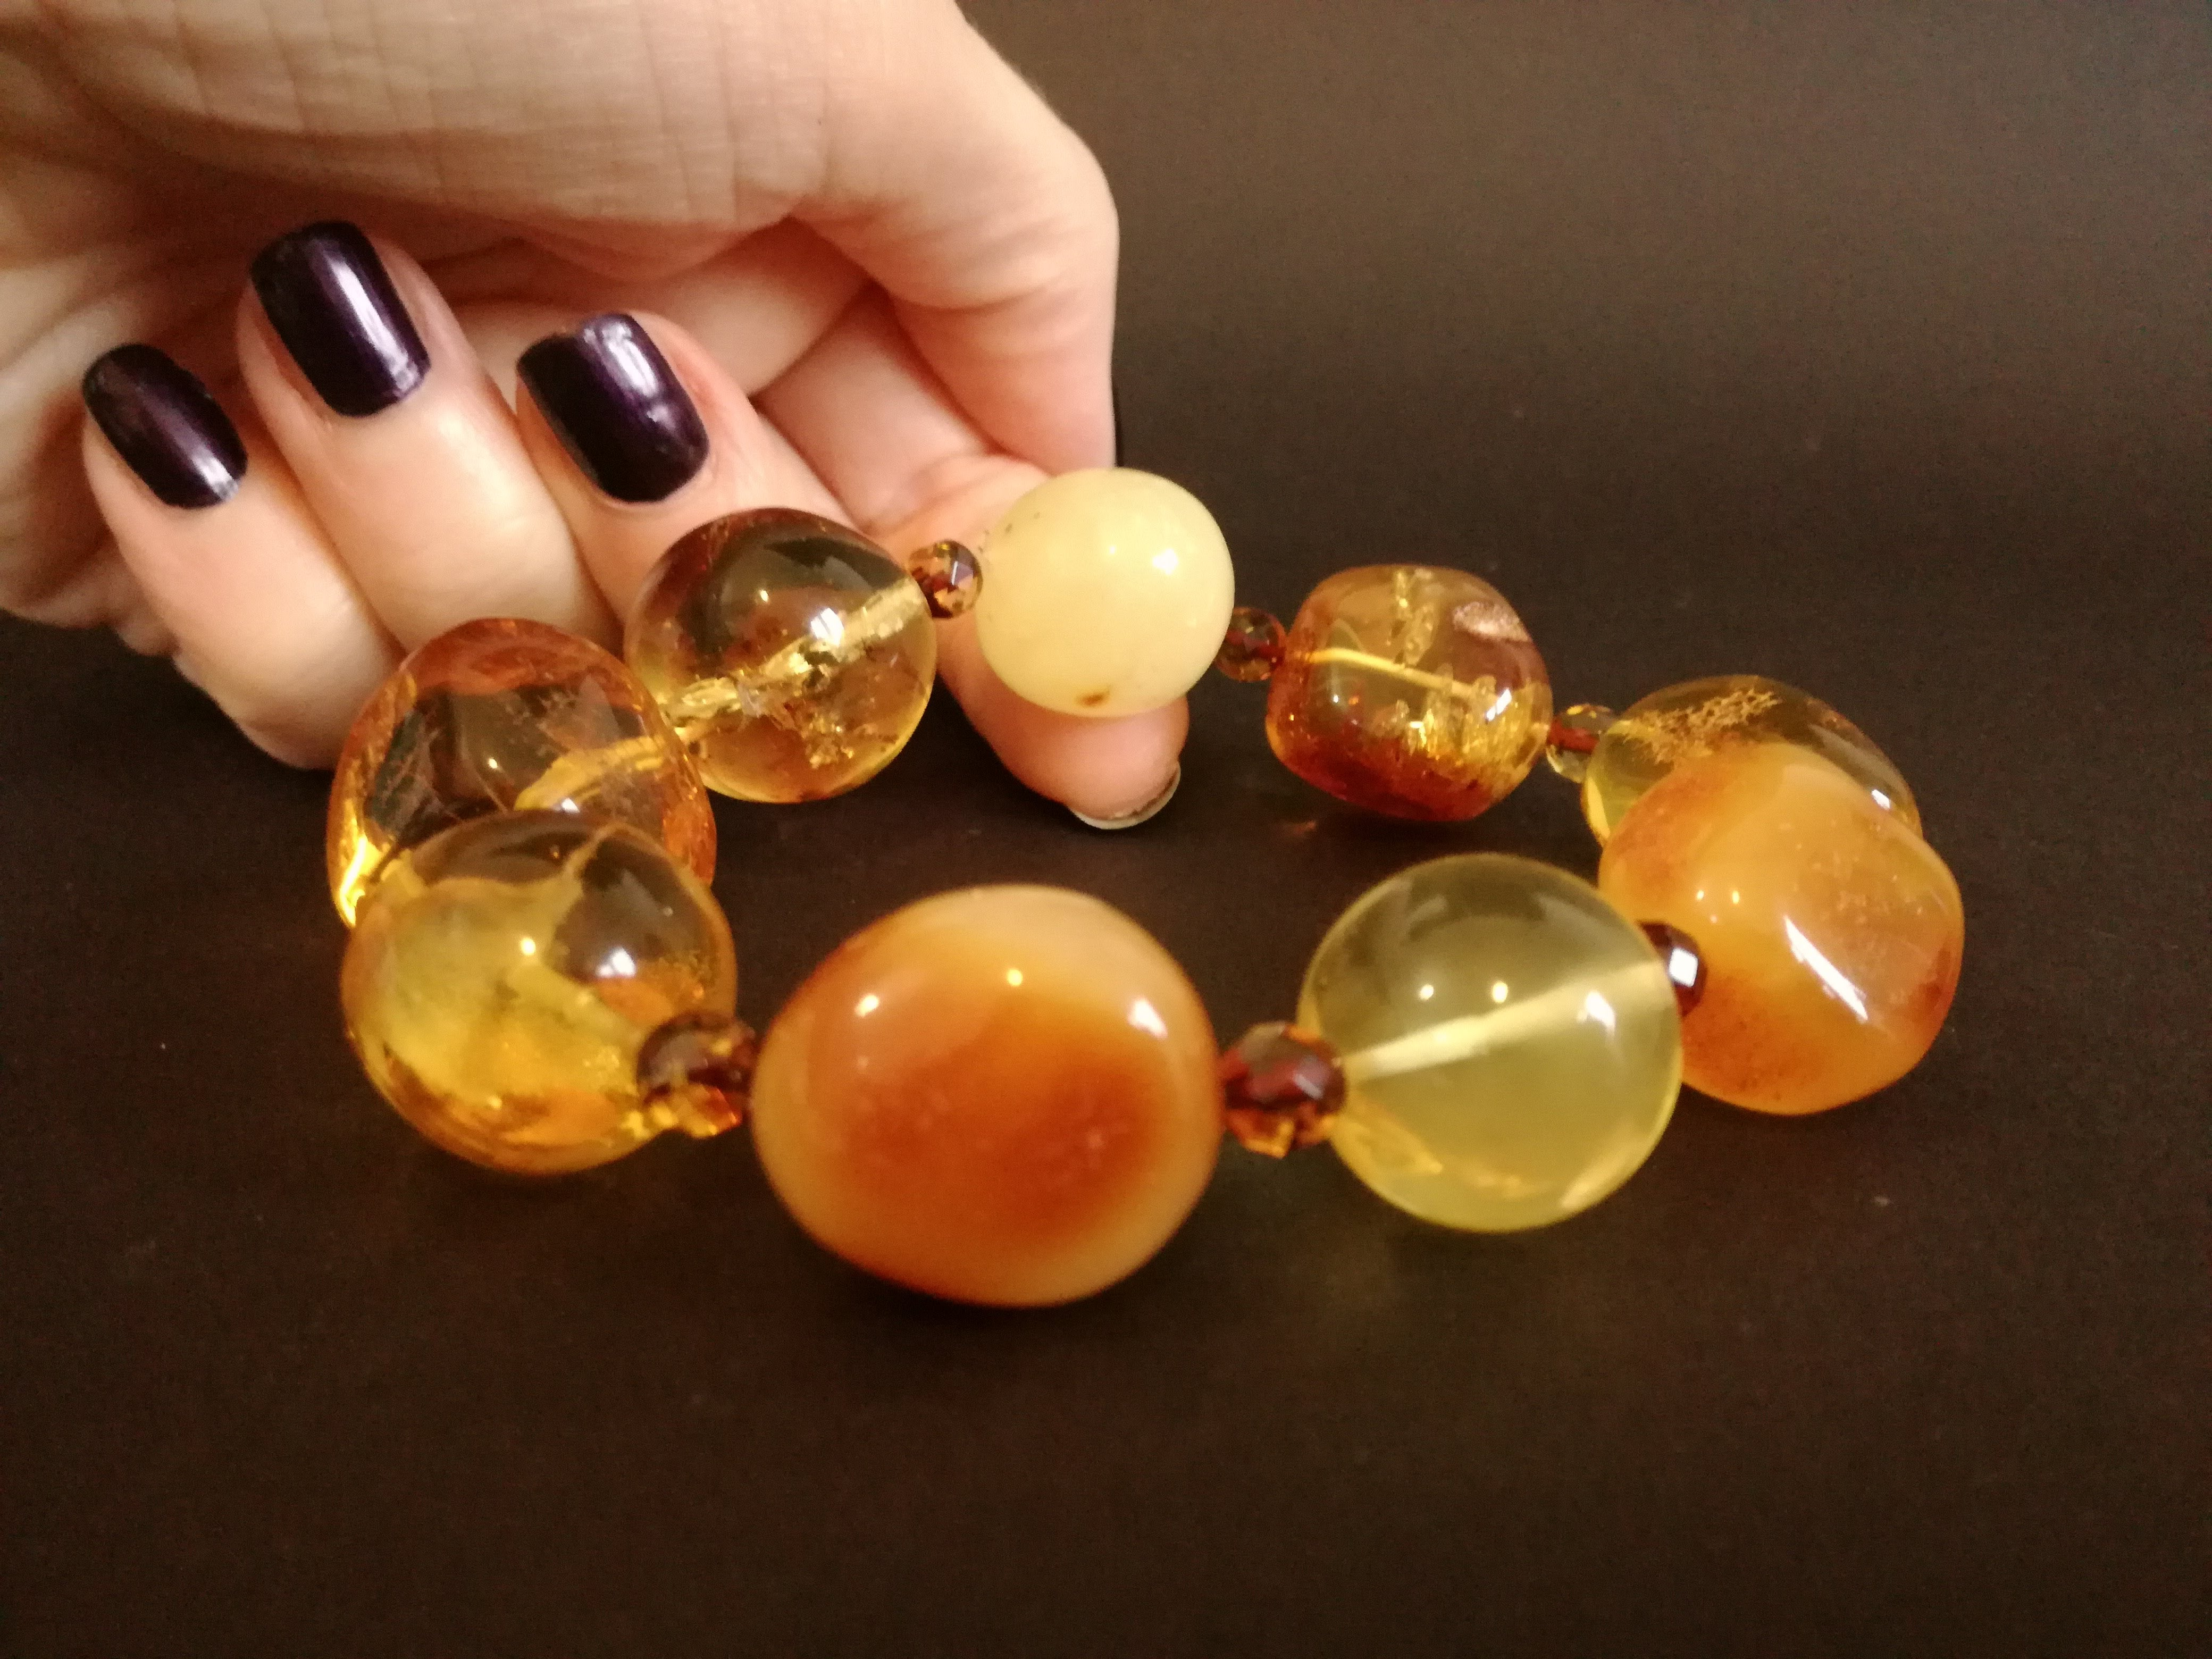 Genuine Handmade Amber Bracelet in Hand, Multicolor, Big Size, Big round beads and small faceted beads, For Her, Nursing Mums